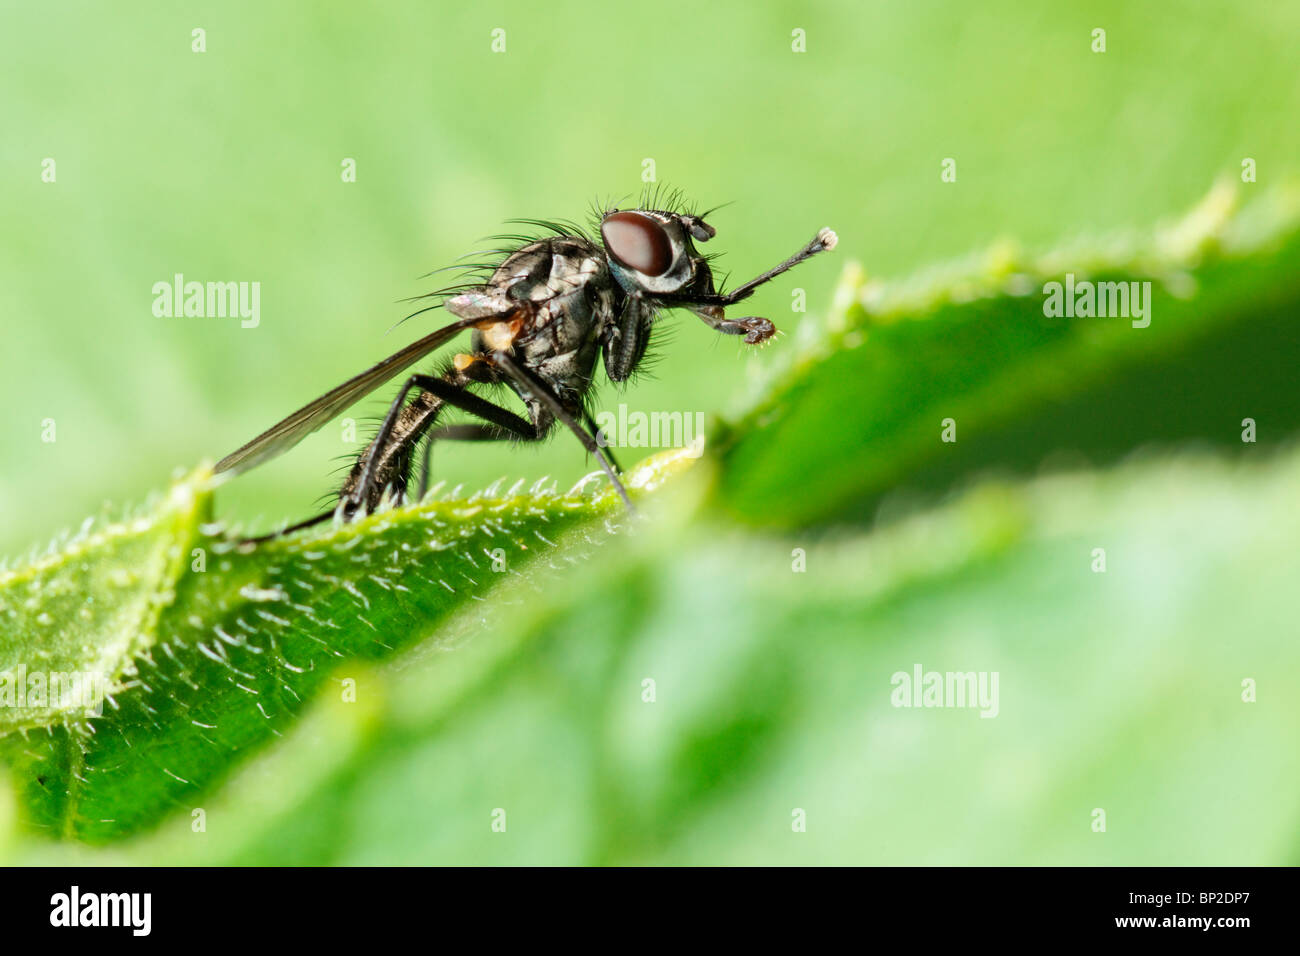 Fly standing on the edge of a leaf. Stock Photo